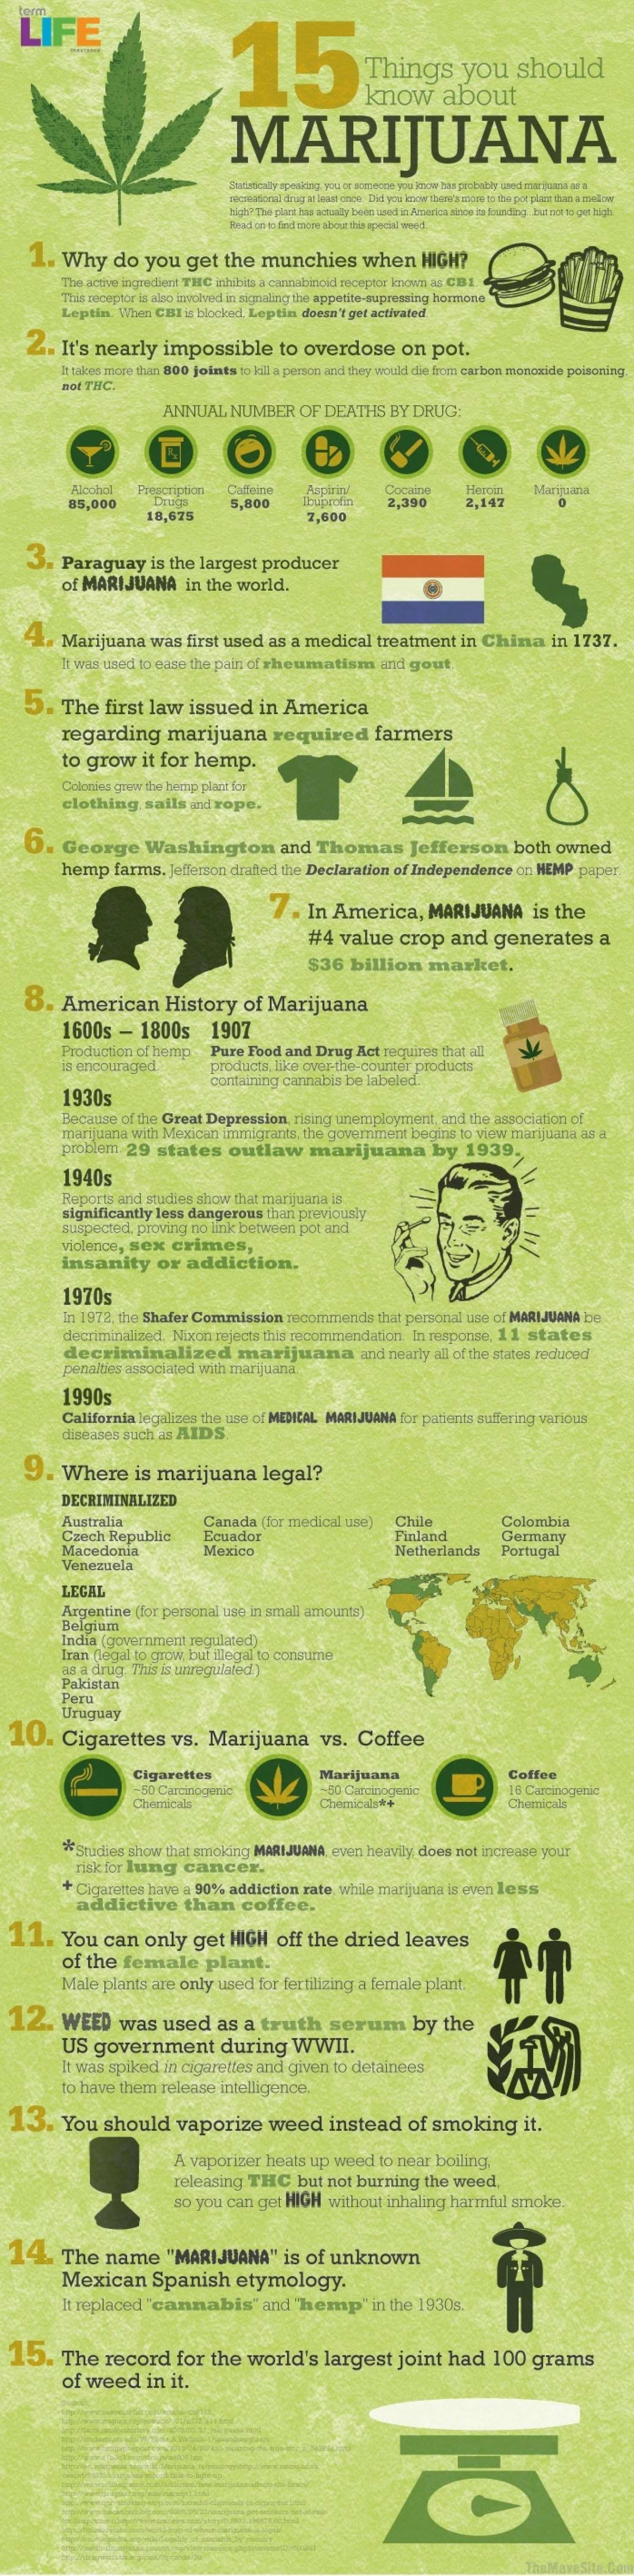 15 Things You Should Know About Marijuana Infographic